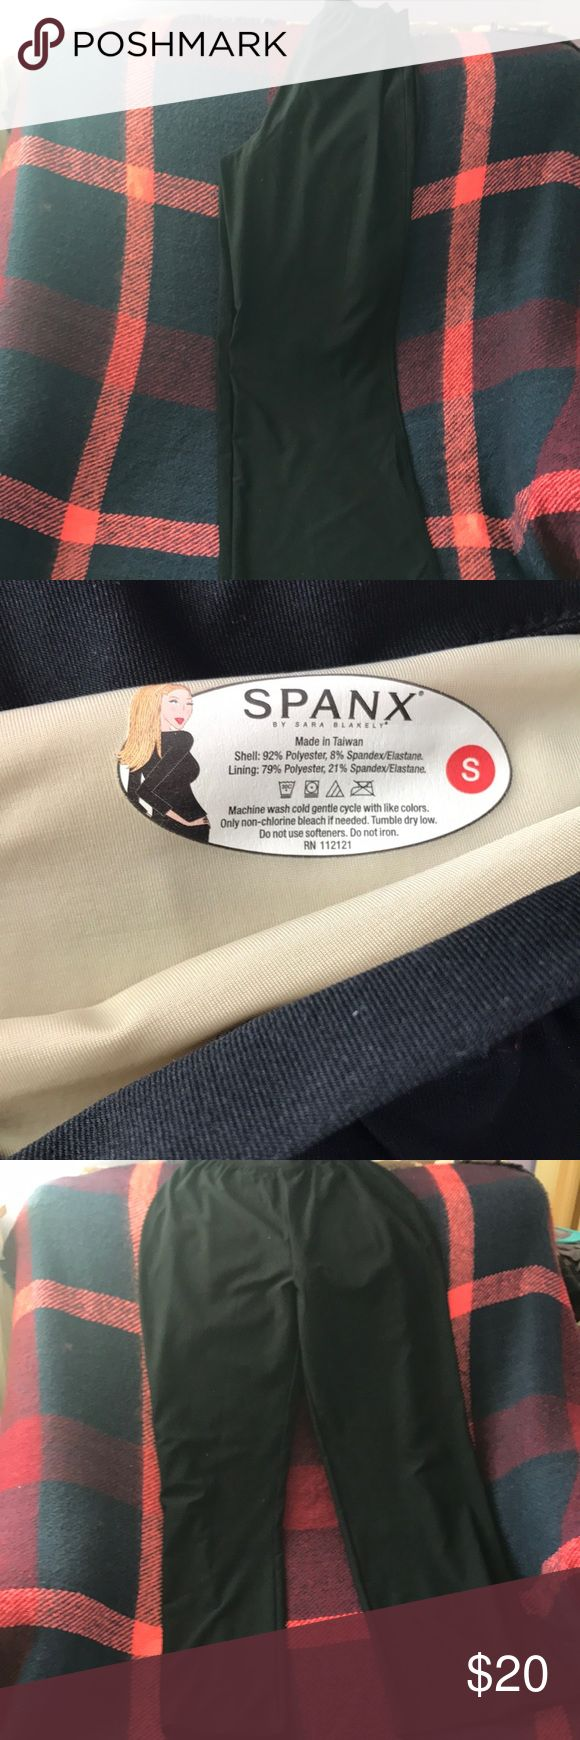 Spanks slimming bootcut pants These hard to find Spanx pants make you look great without having to wear a slimming undergarment. The inner Shapeware part extends from the waist to the knee. SPANX Pants Boot Cut & Flare